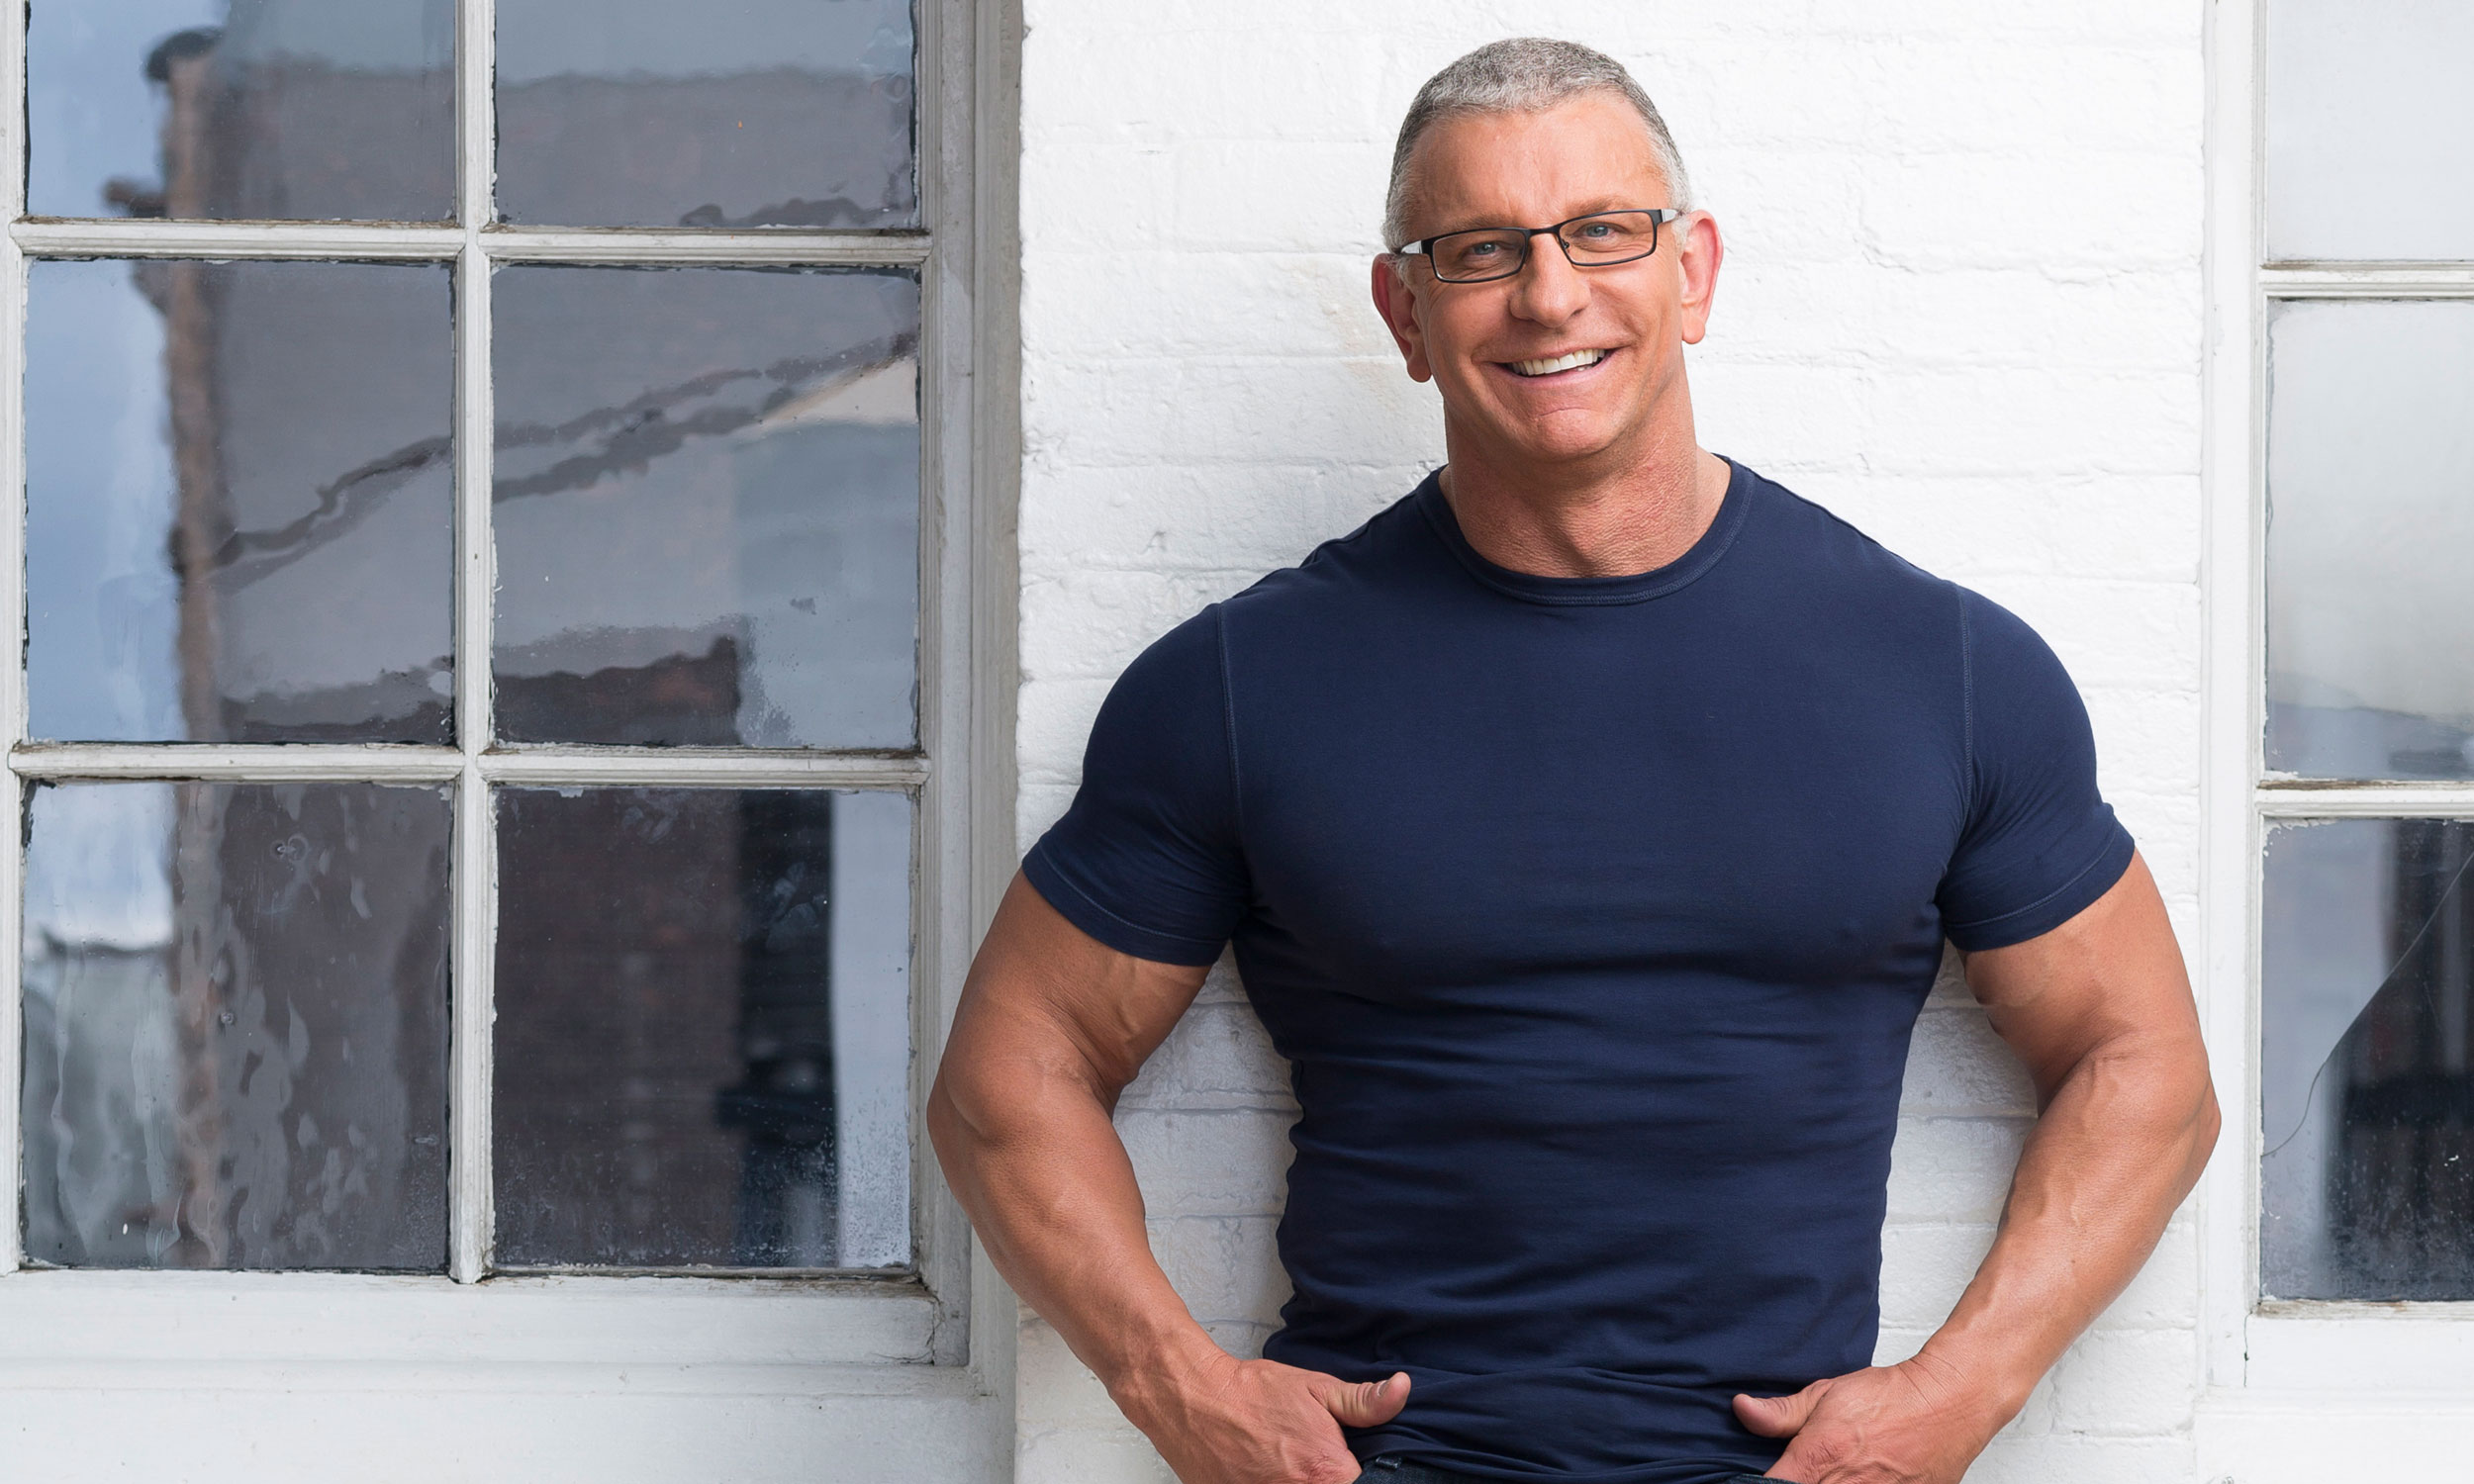 Robert Irvine Phone number, Email Id, Fanmail, Instagram, Tiktok, and Contact Details